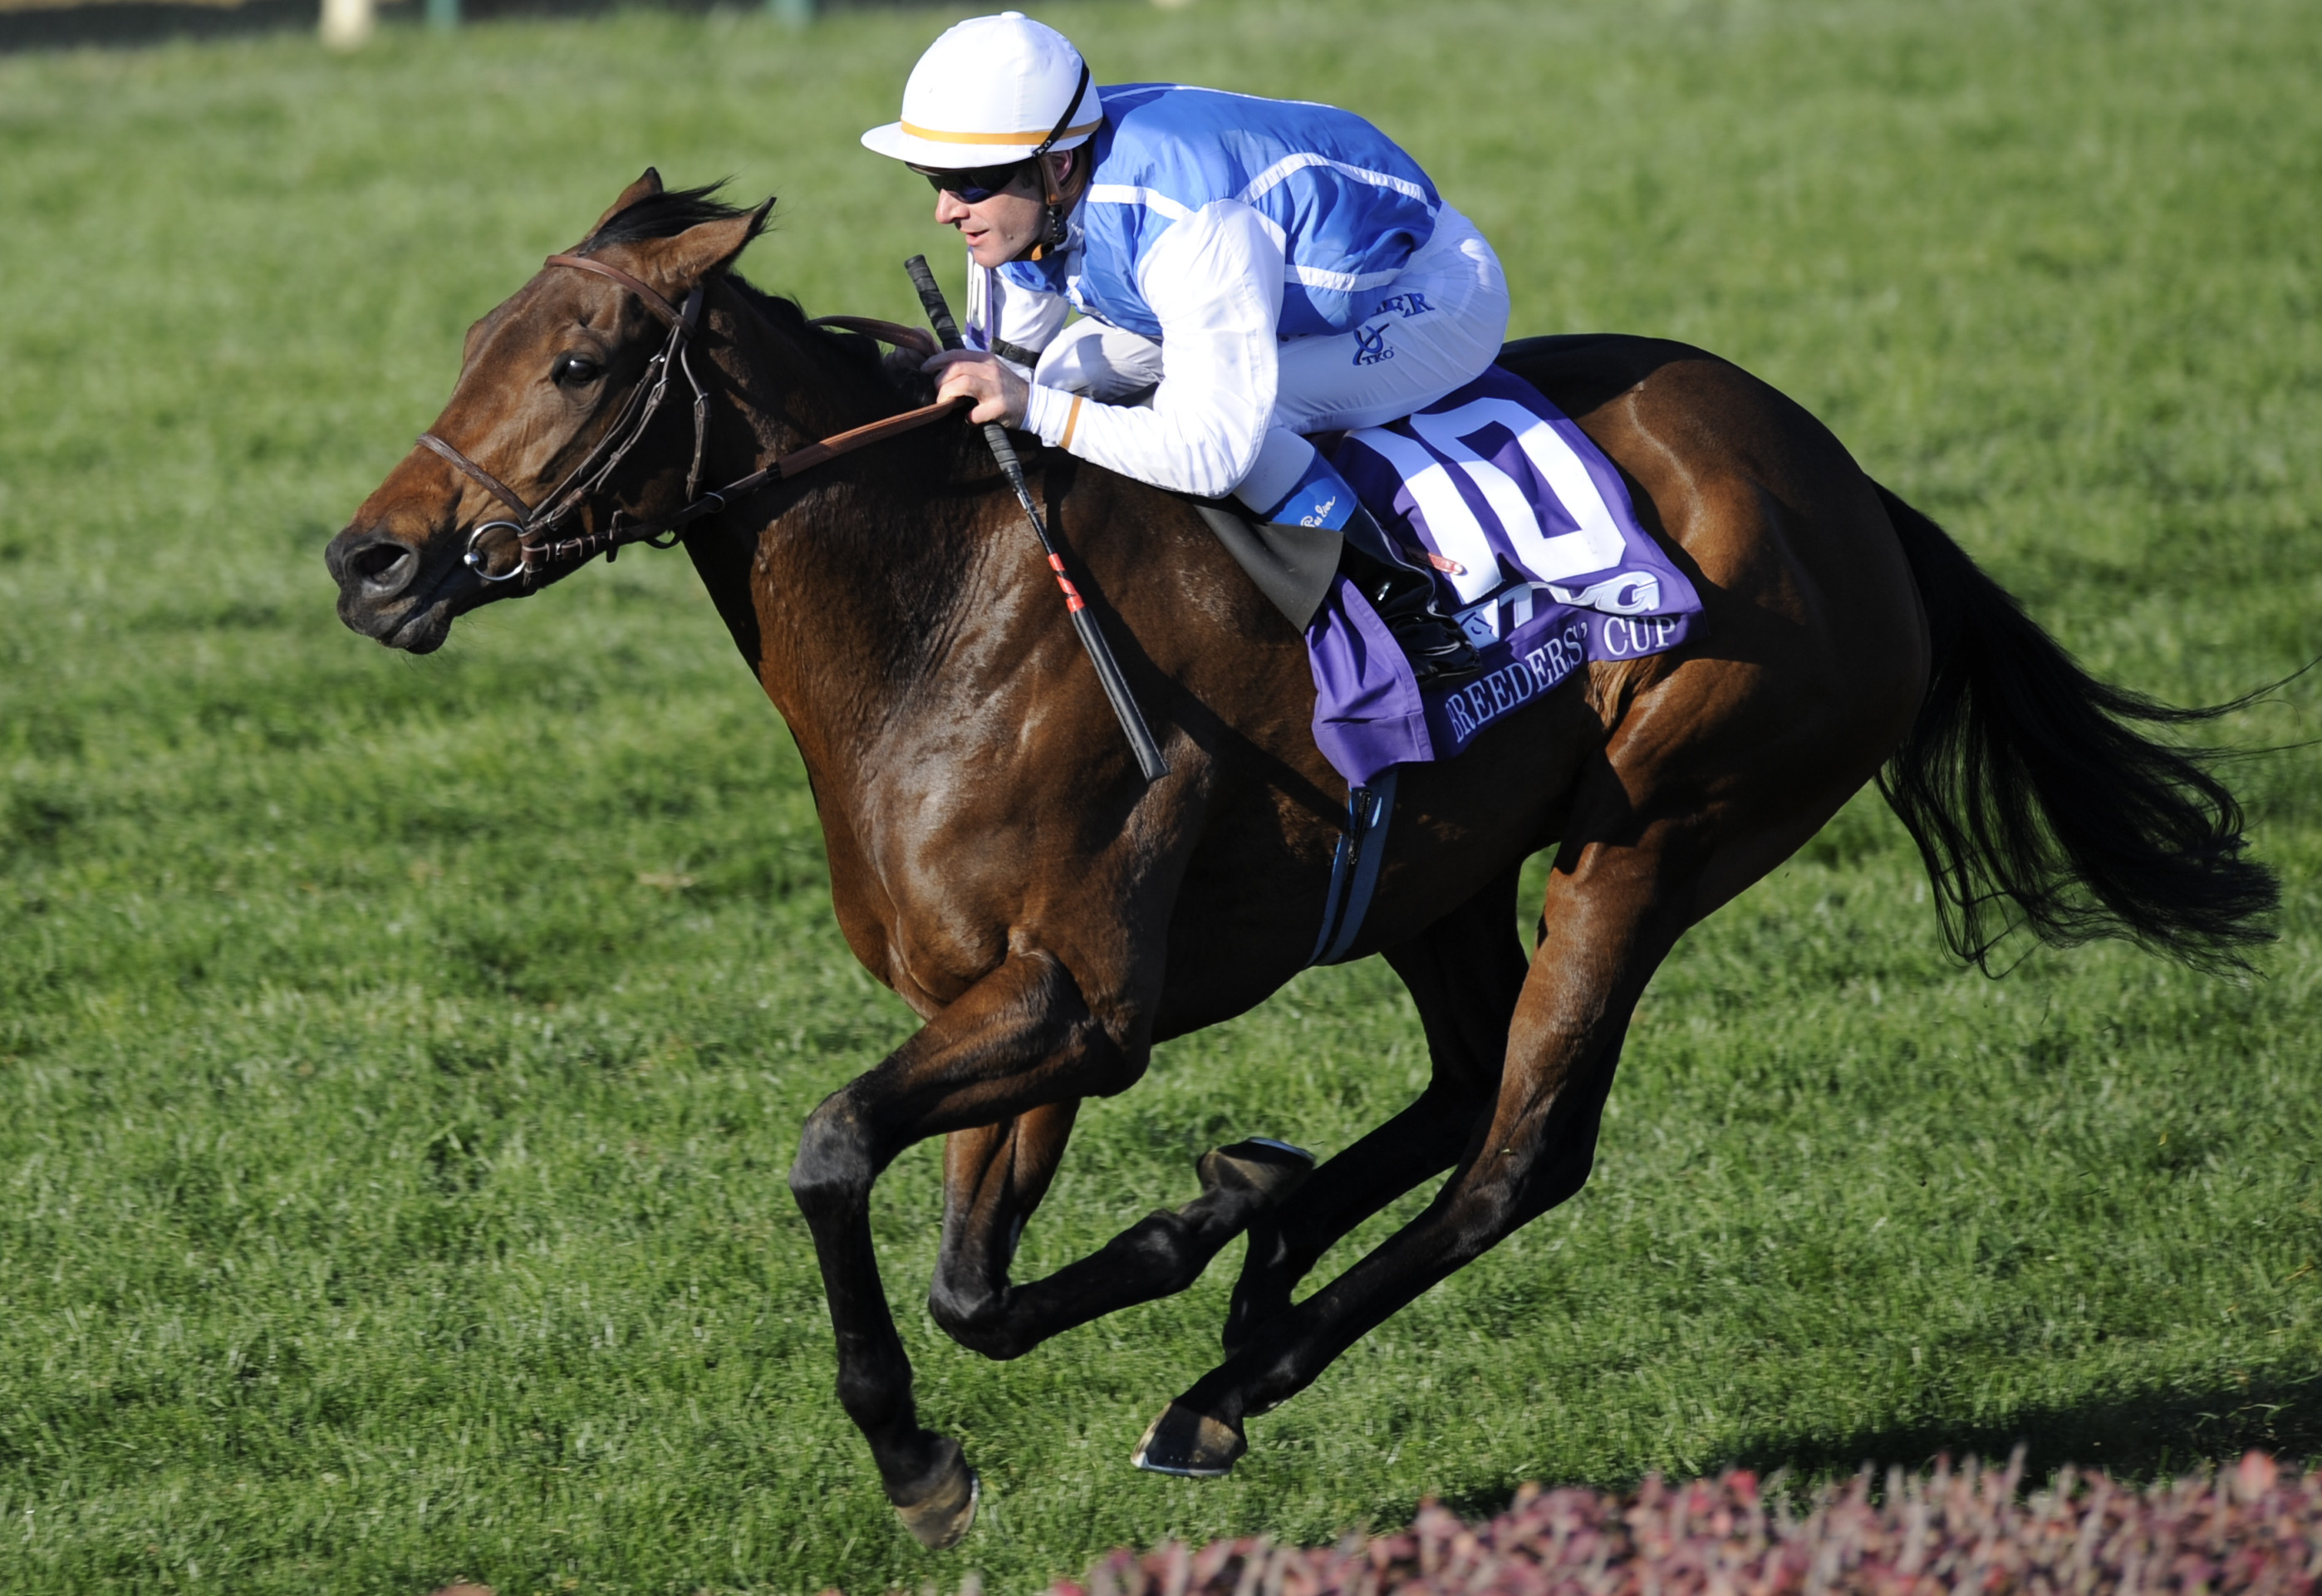 Goldikova (Olivier Peslier up) in the 2010 Breeders' Cup Mile at Churchill Downs (Breeders' Cup Photo)